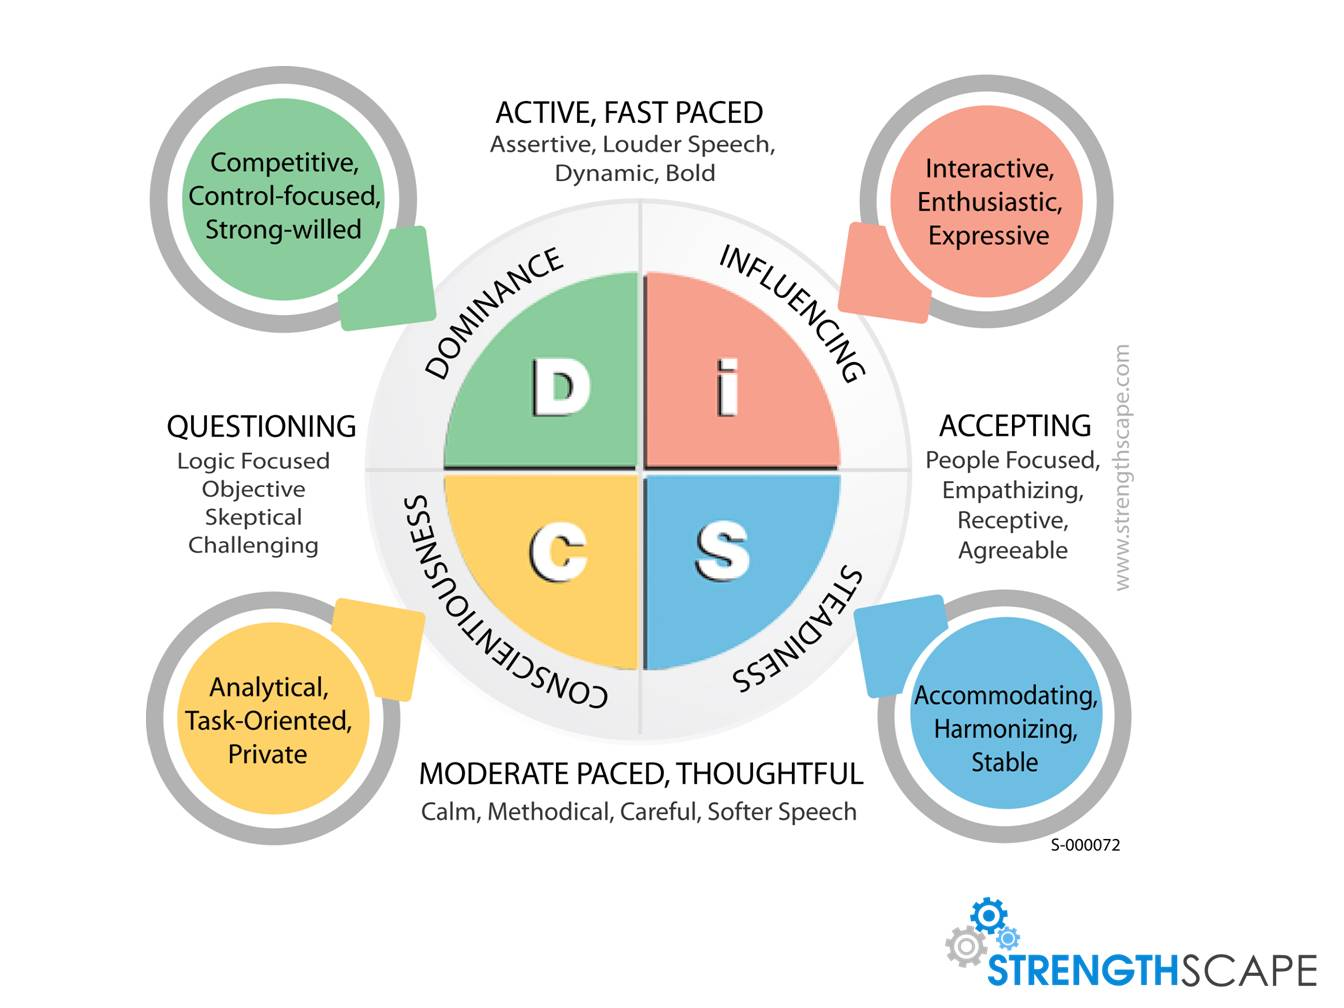 DiSC behavioural model